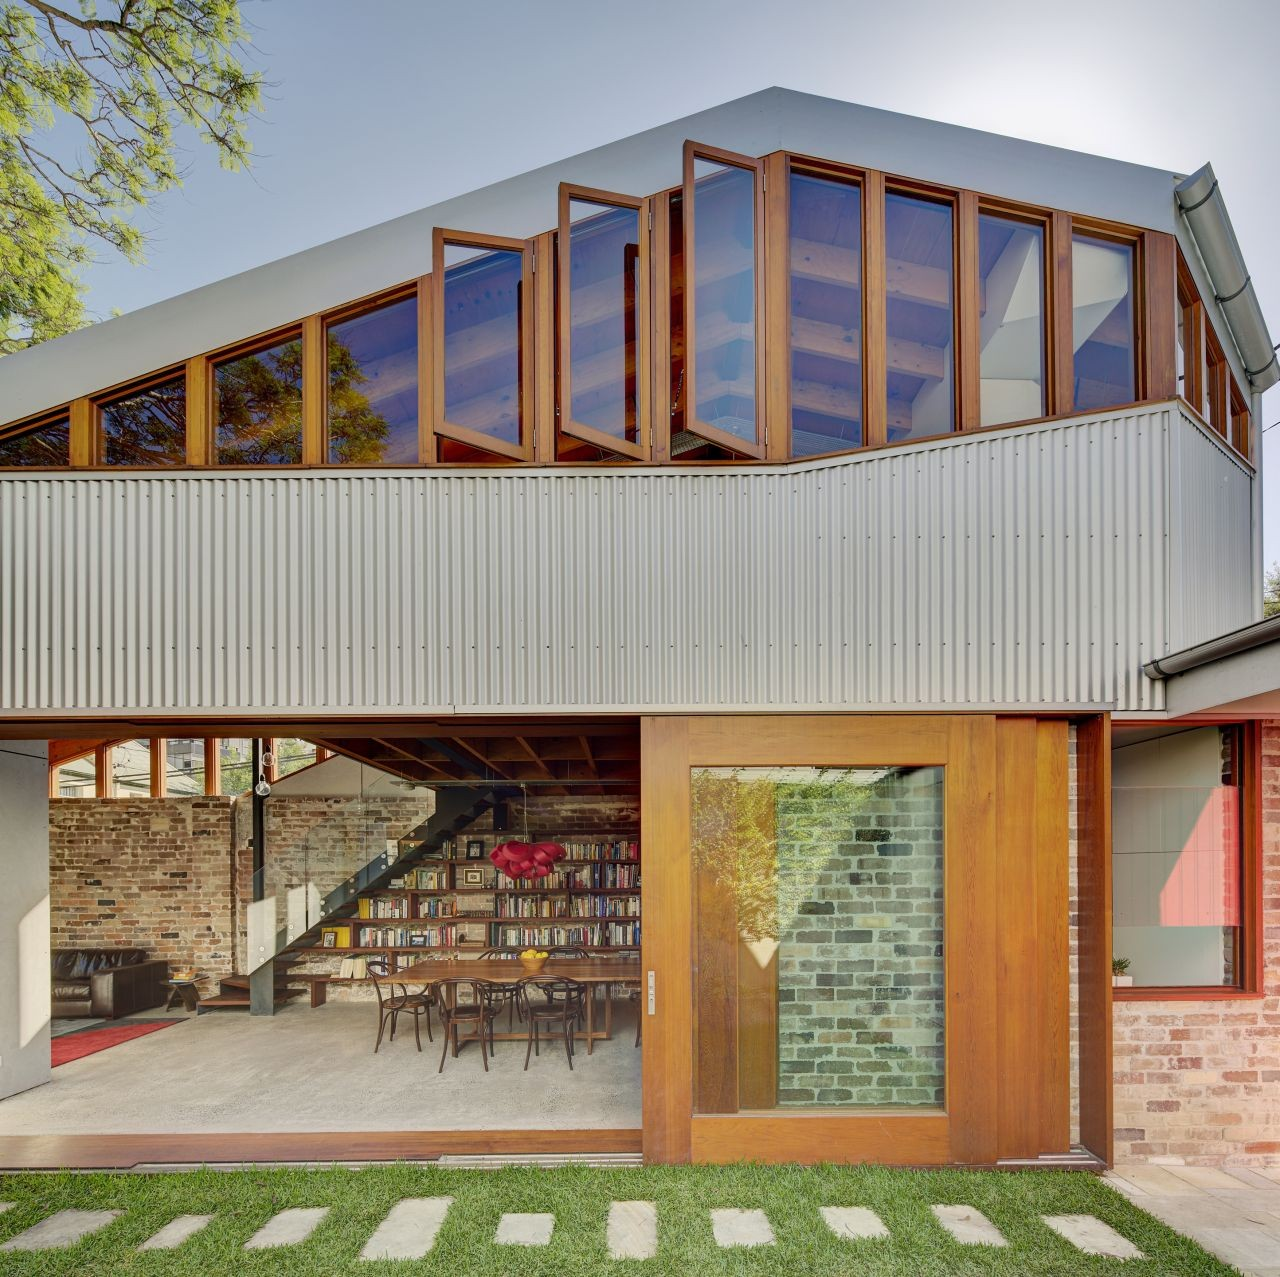 Casa Cowshed / Carter Williamson Architects